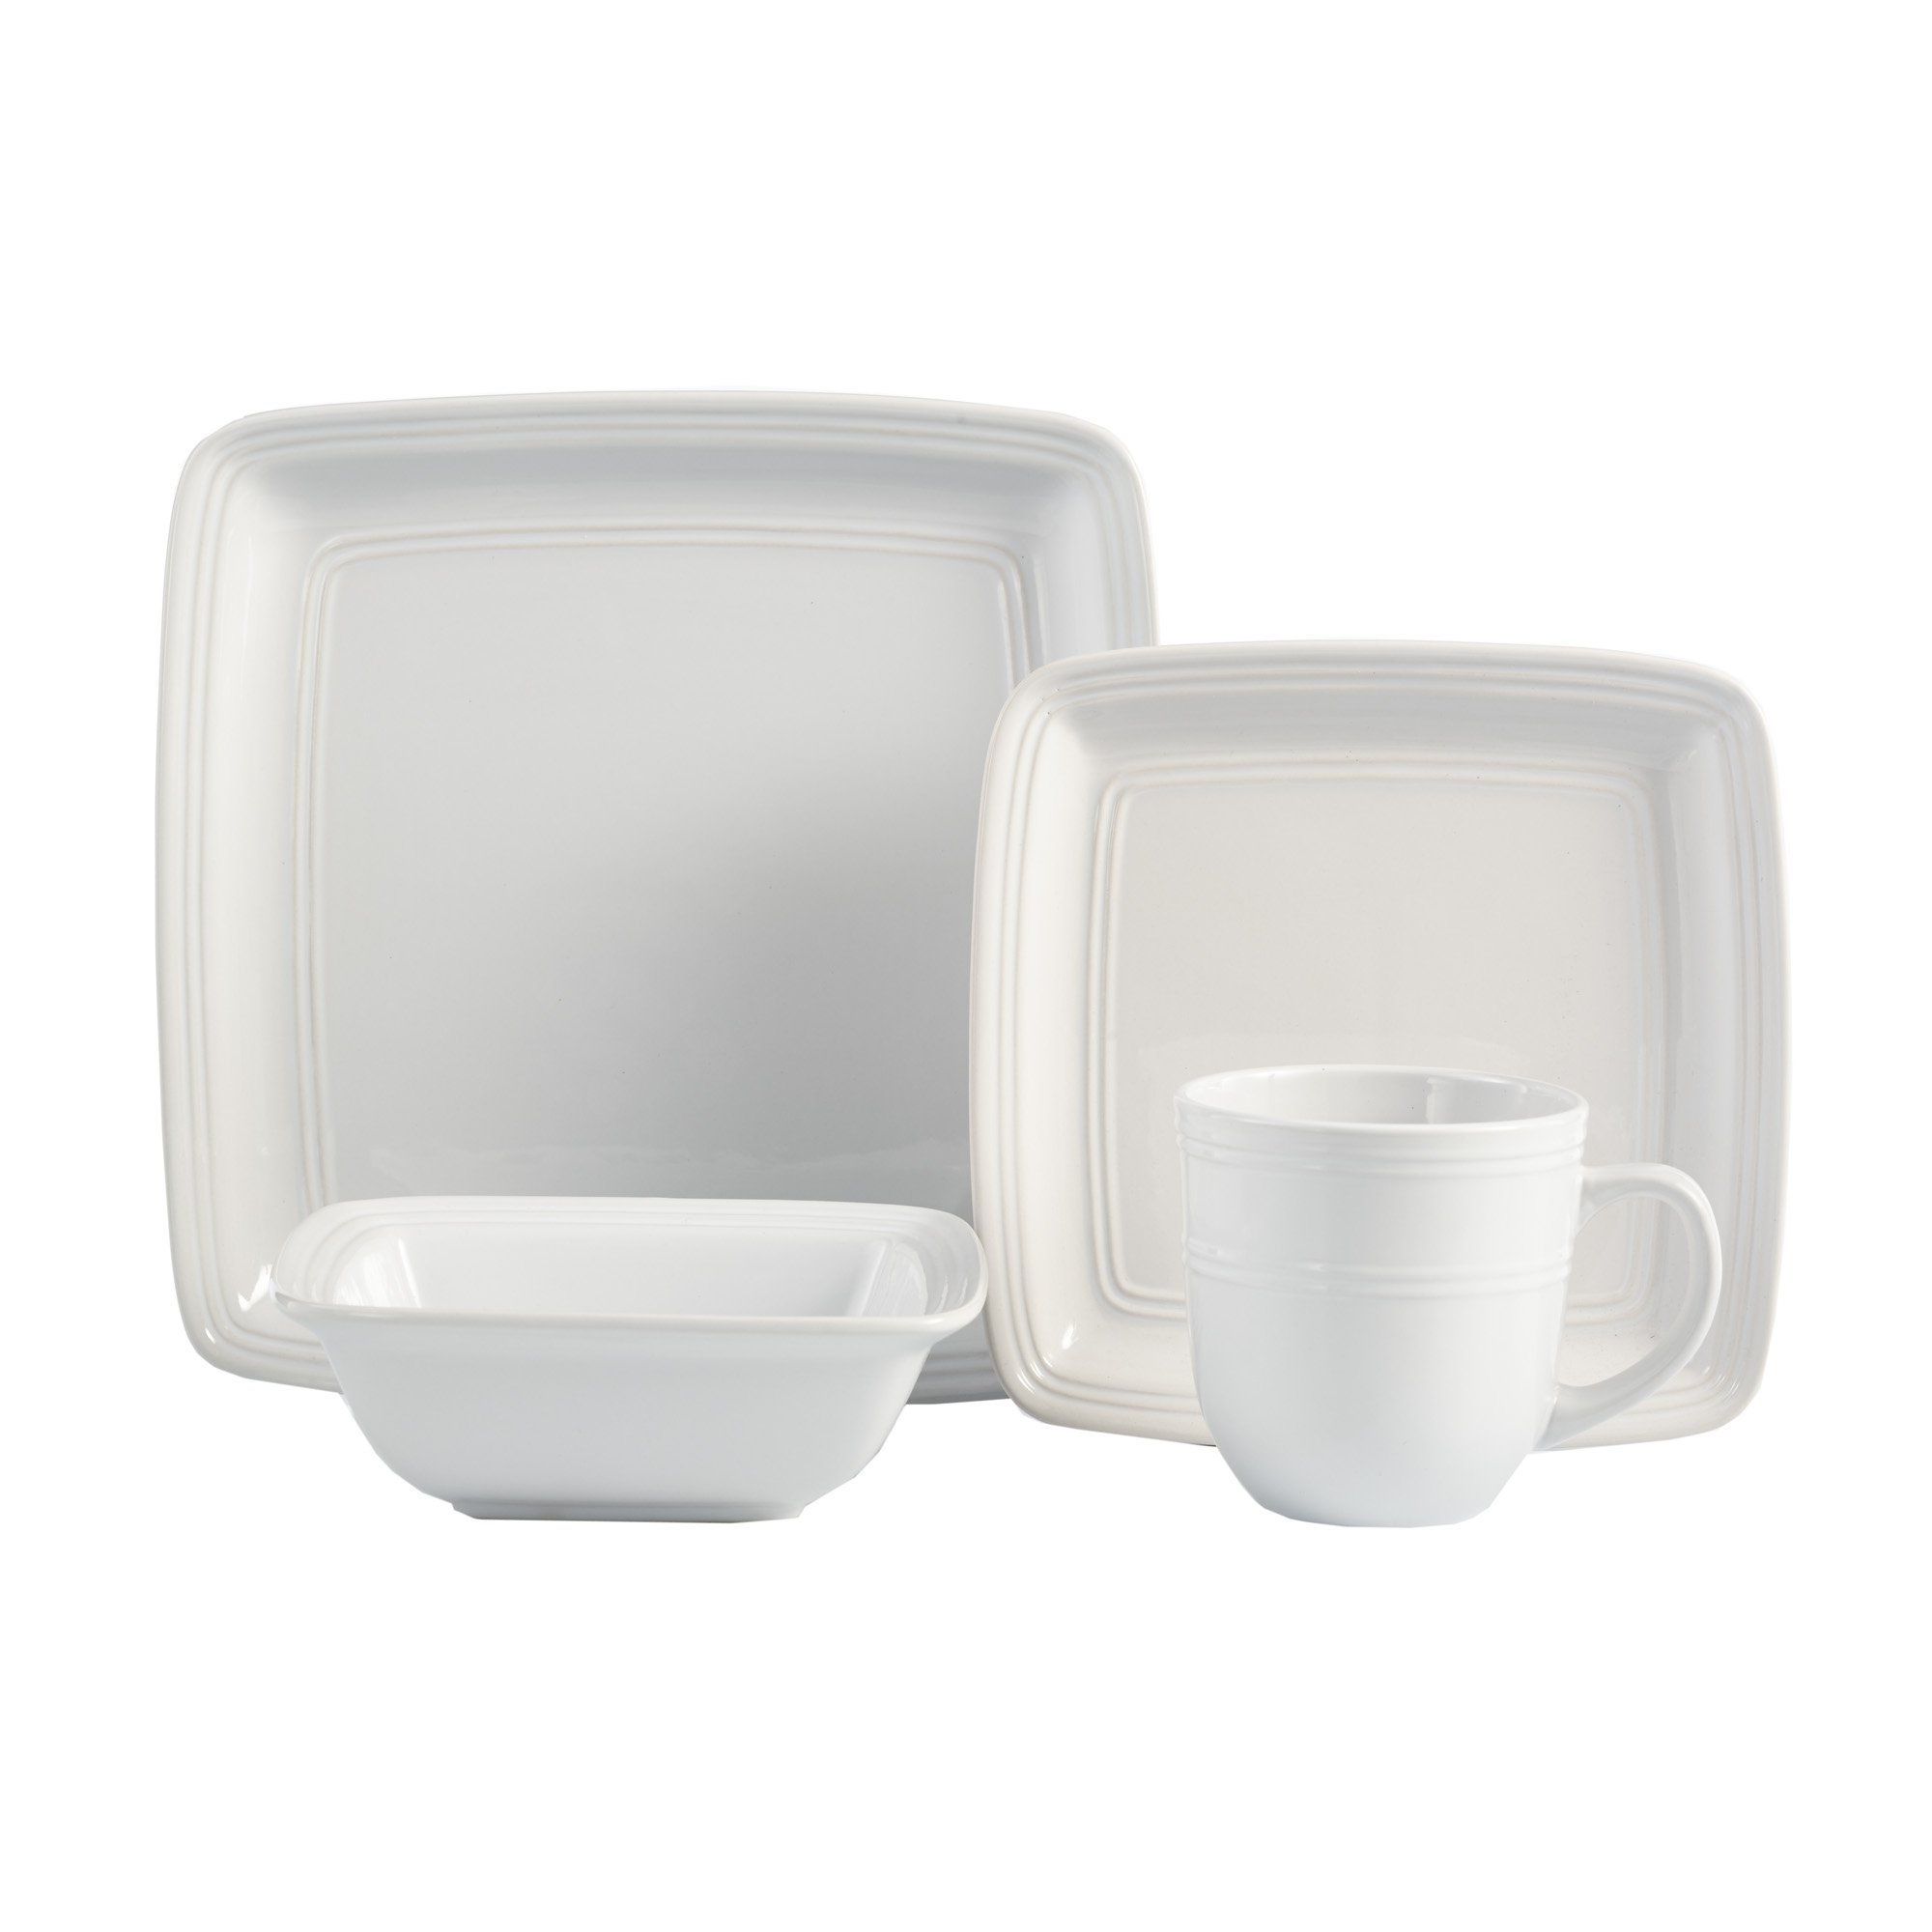 American Atelier Madelyn Square White 16 Piece Dinnerware Set, 10.75x10.75